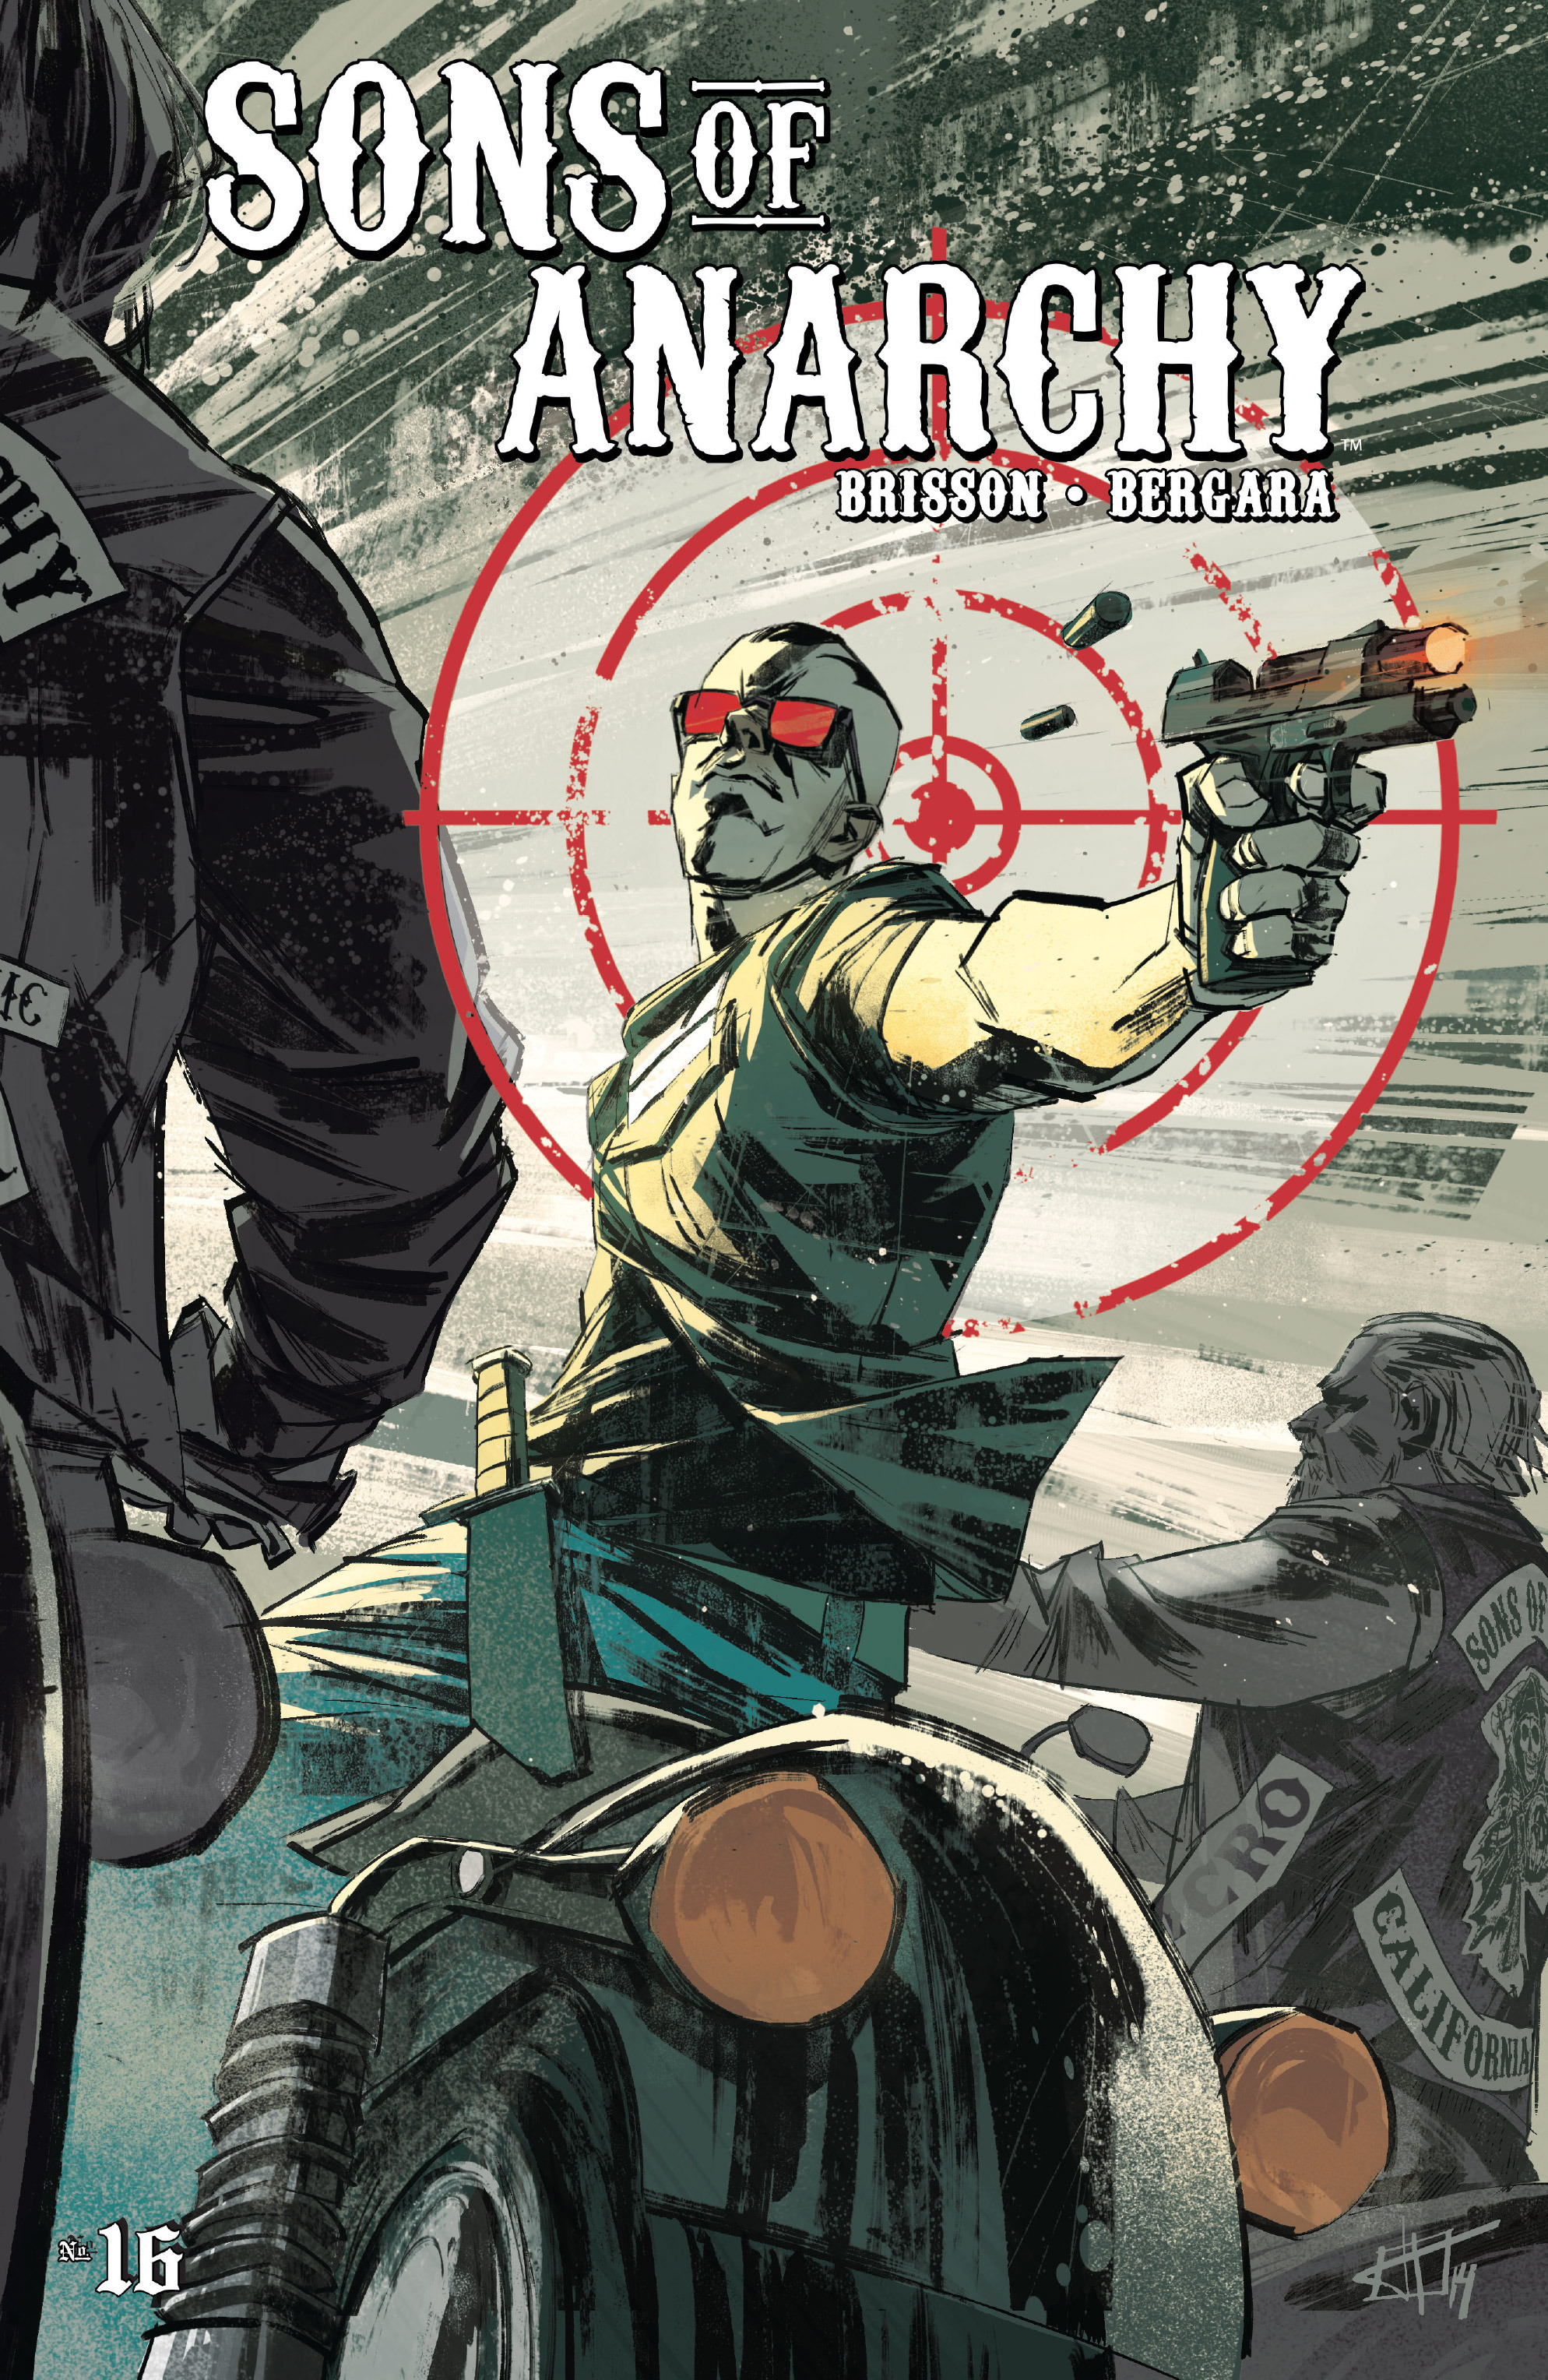 Read online Sons of Anarchy comic -  Issue #16 - 1